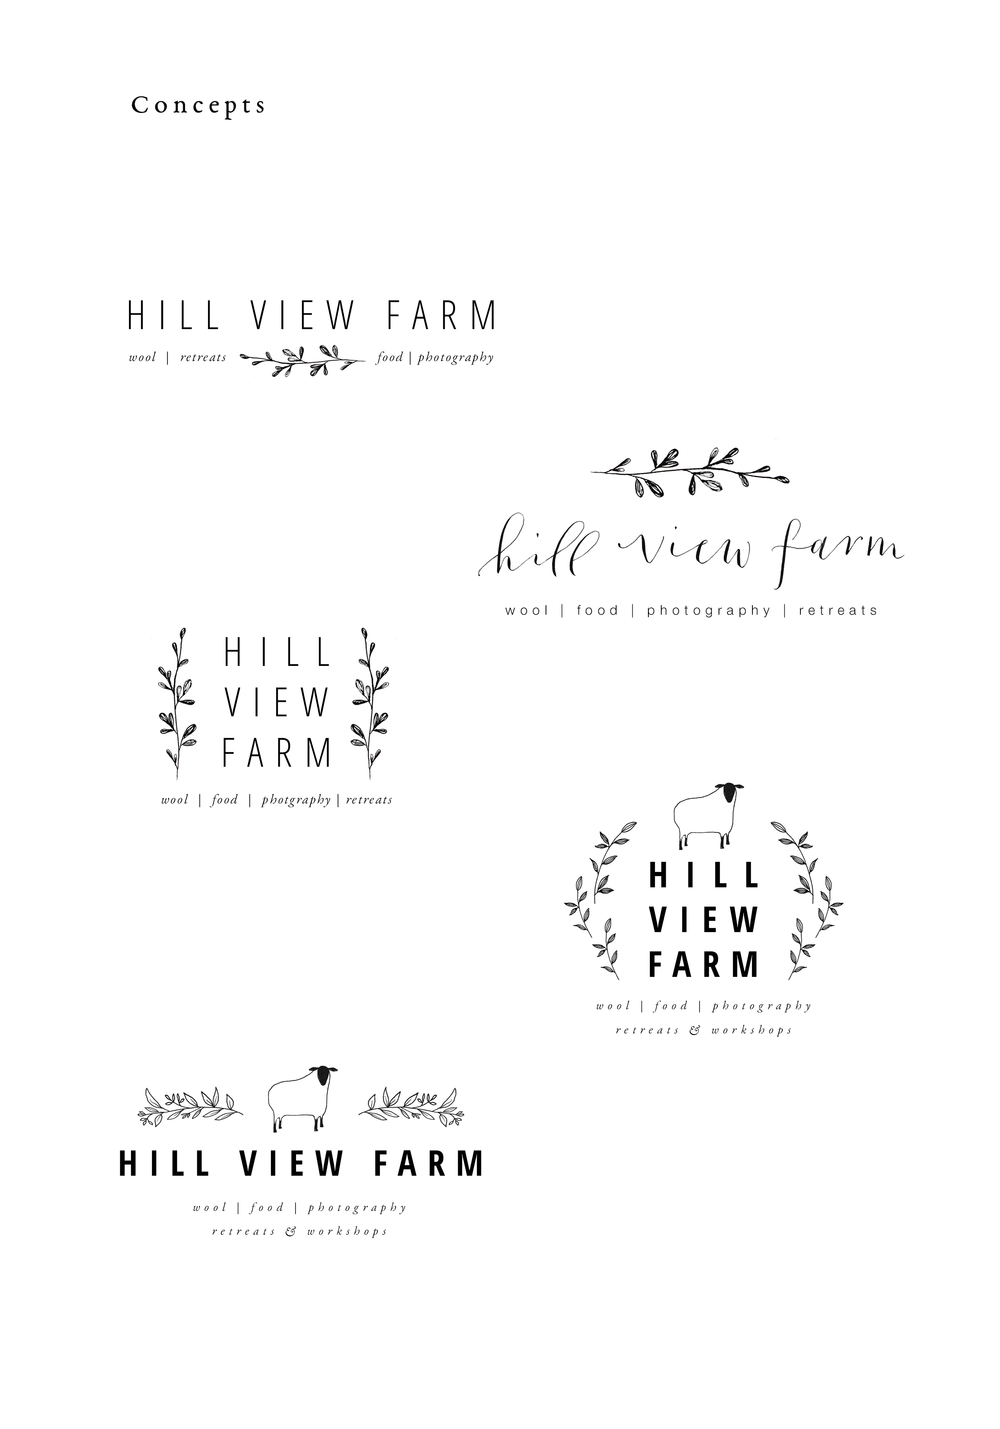 Hill-view-farm-concepts.png